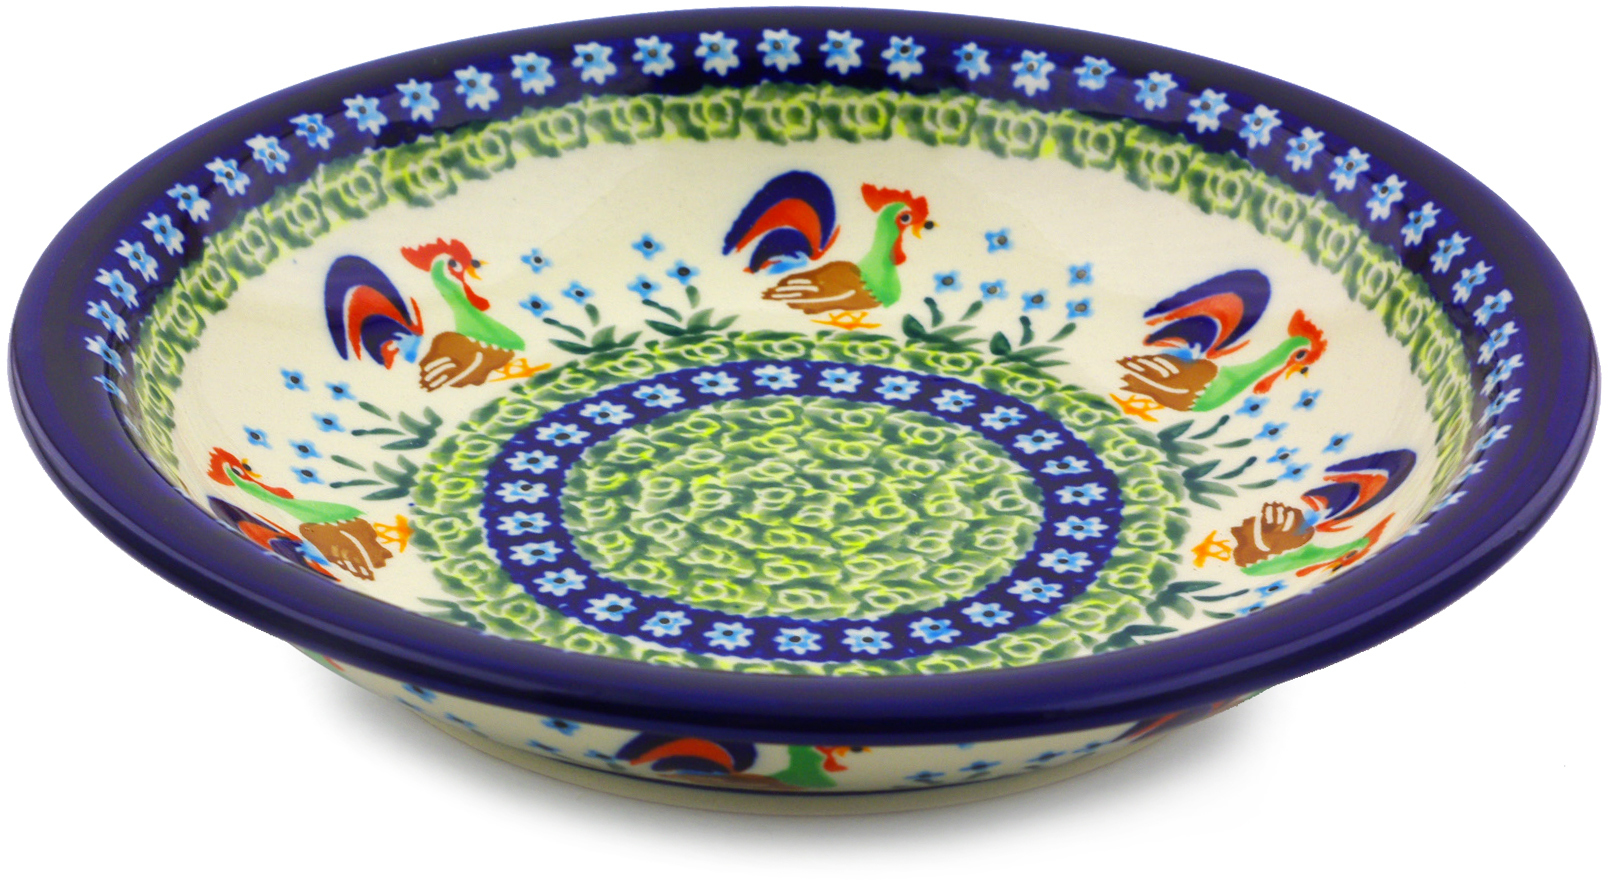 Polish Pottery 9-inch Pasta Bowl (Country Rooster Theme) Signature UNIKAT Hand Painted in Boleslawiec, Poland... by Zaklady Ceramiczne